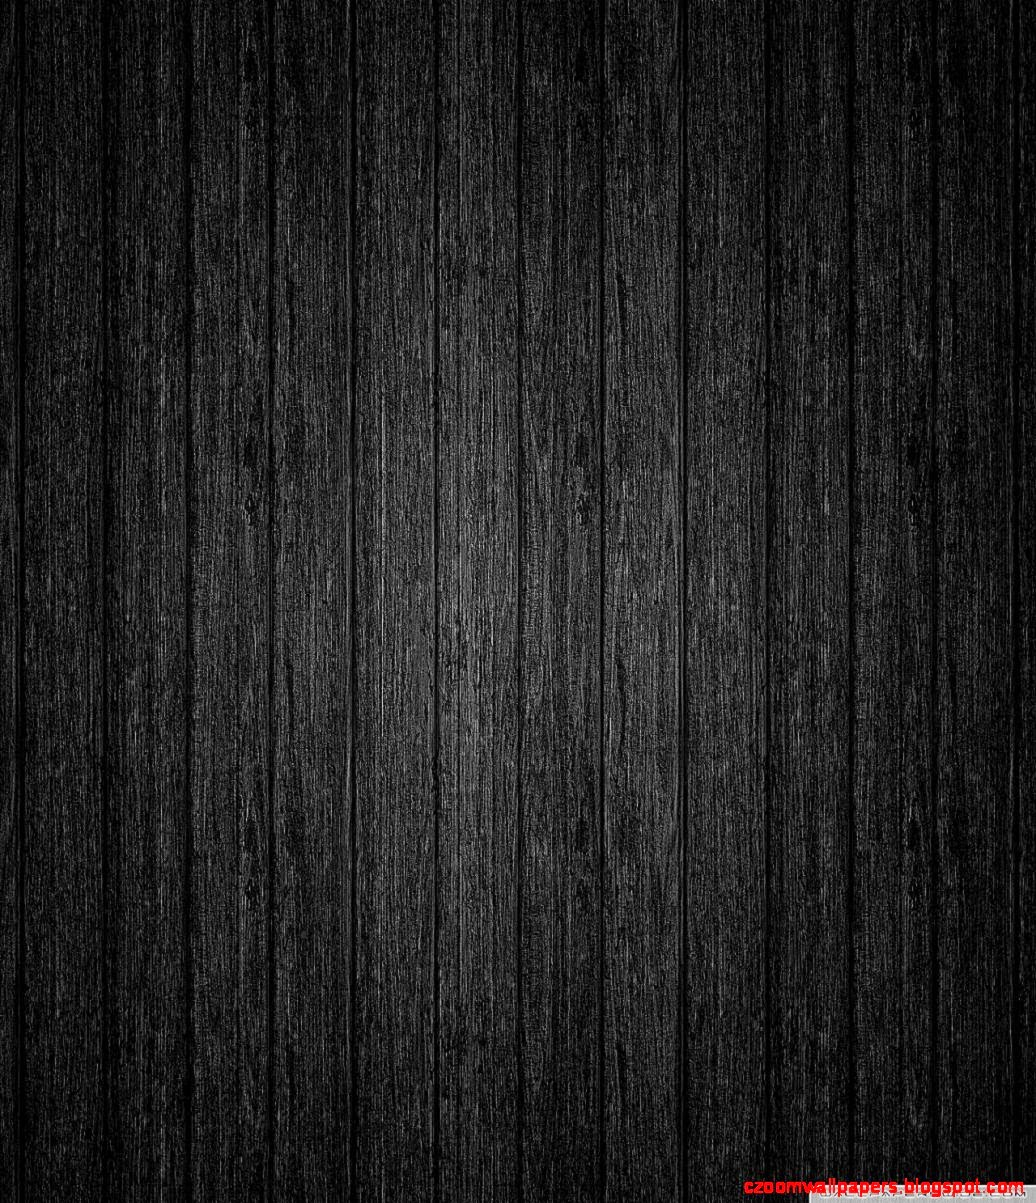 iphone 5 wallpaper hd wood